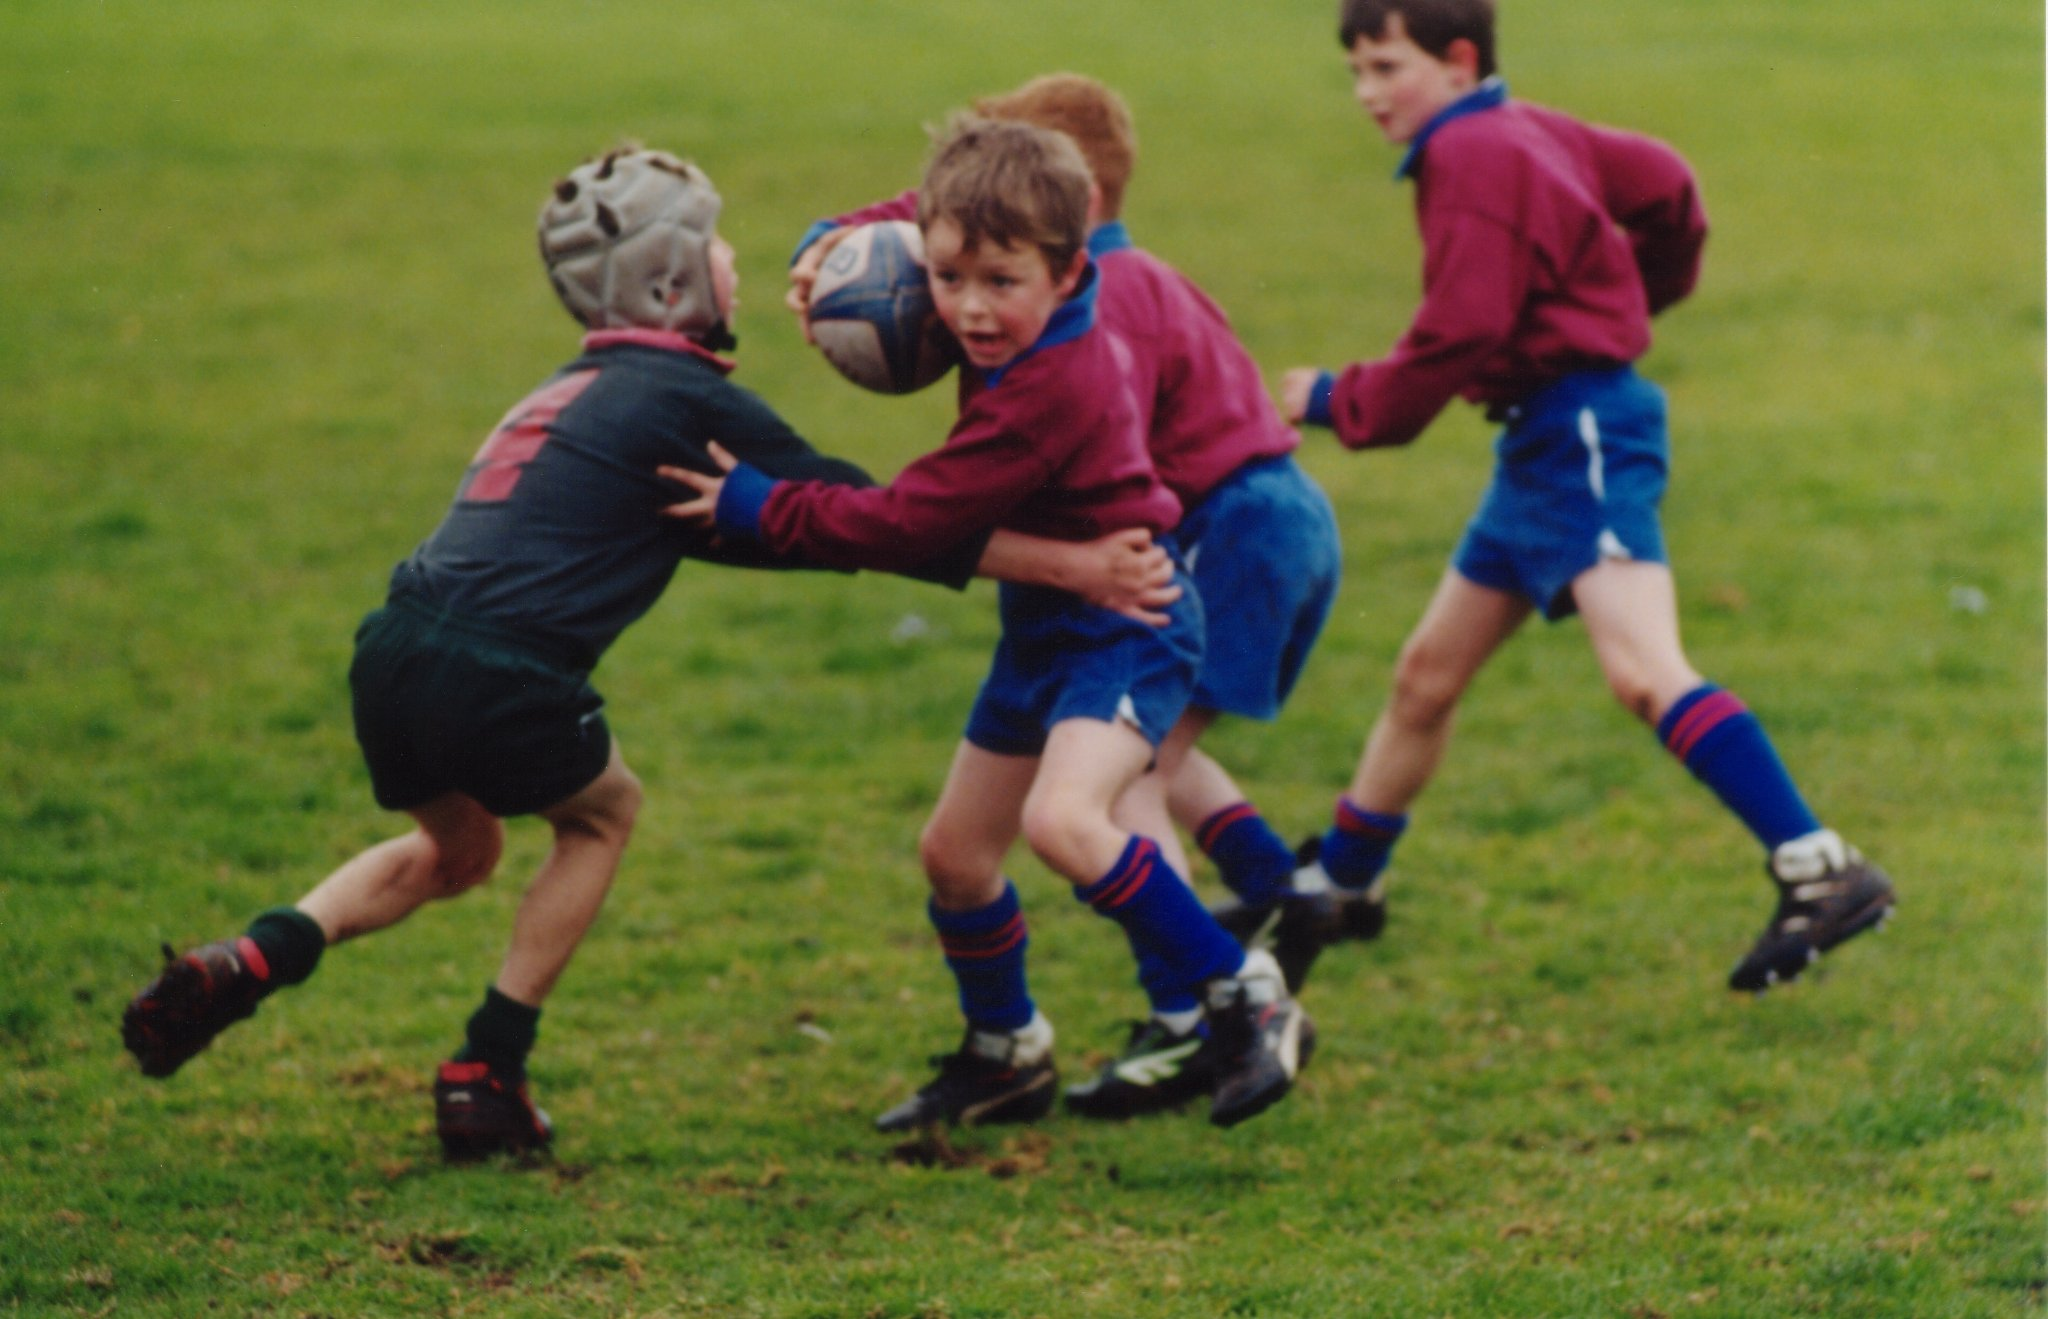 Jake-with-ball-2001